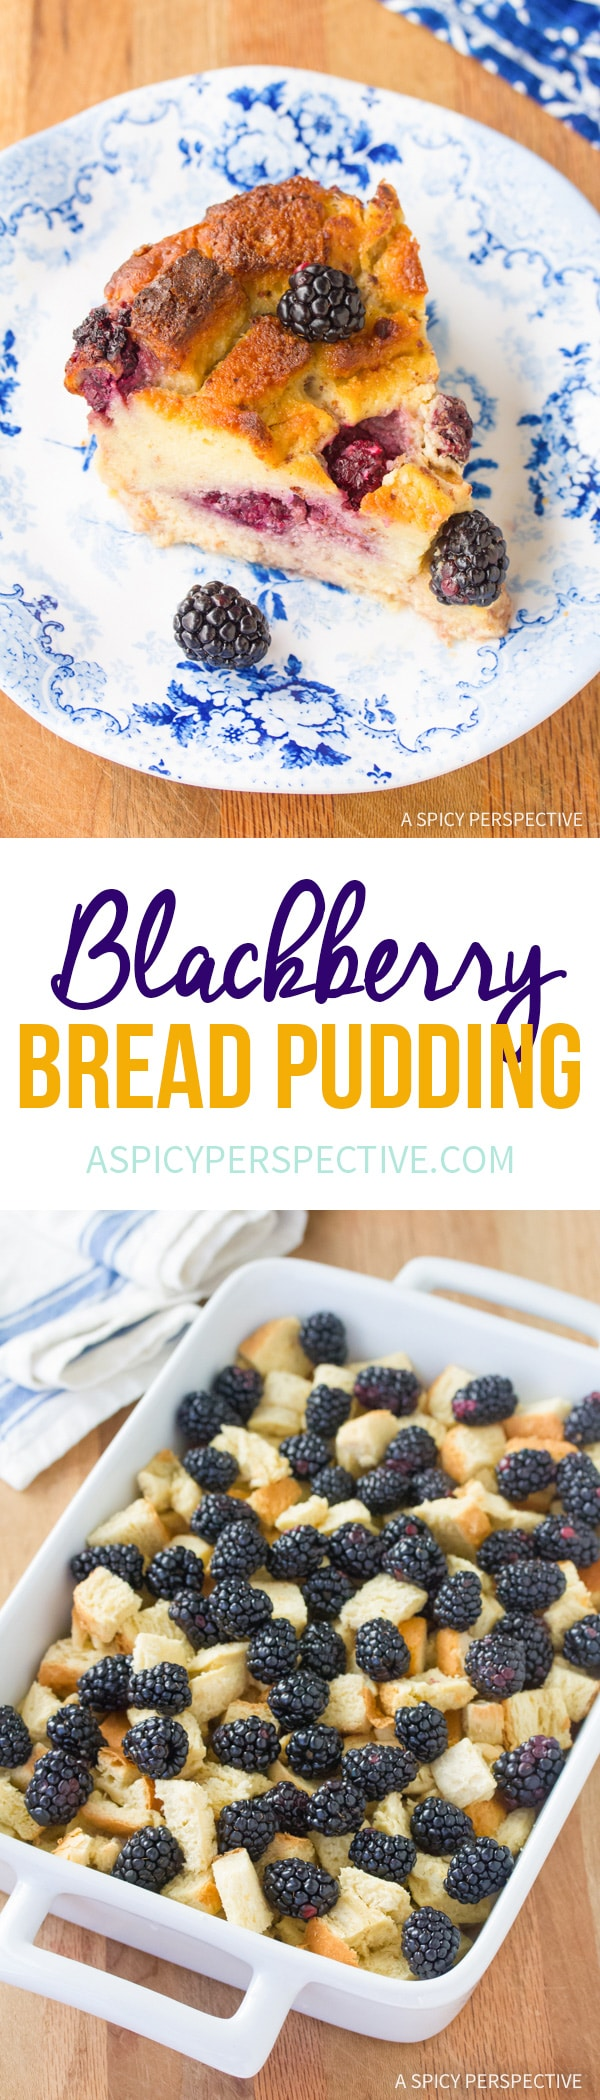 Fresh Blackberry Bread Pudding Recipe